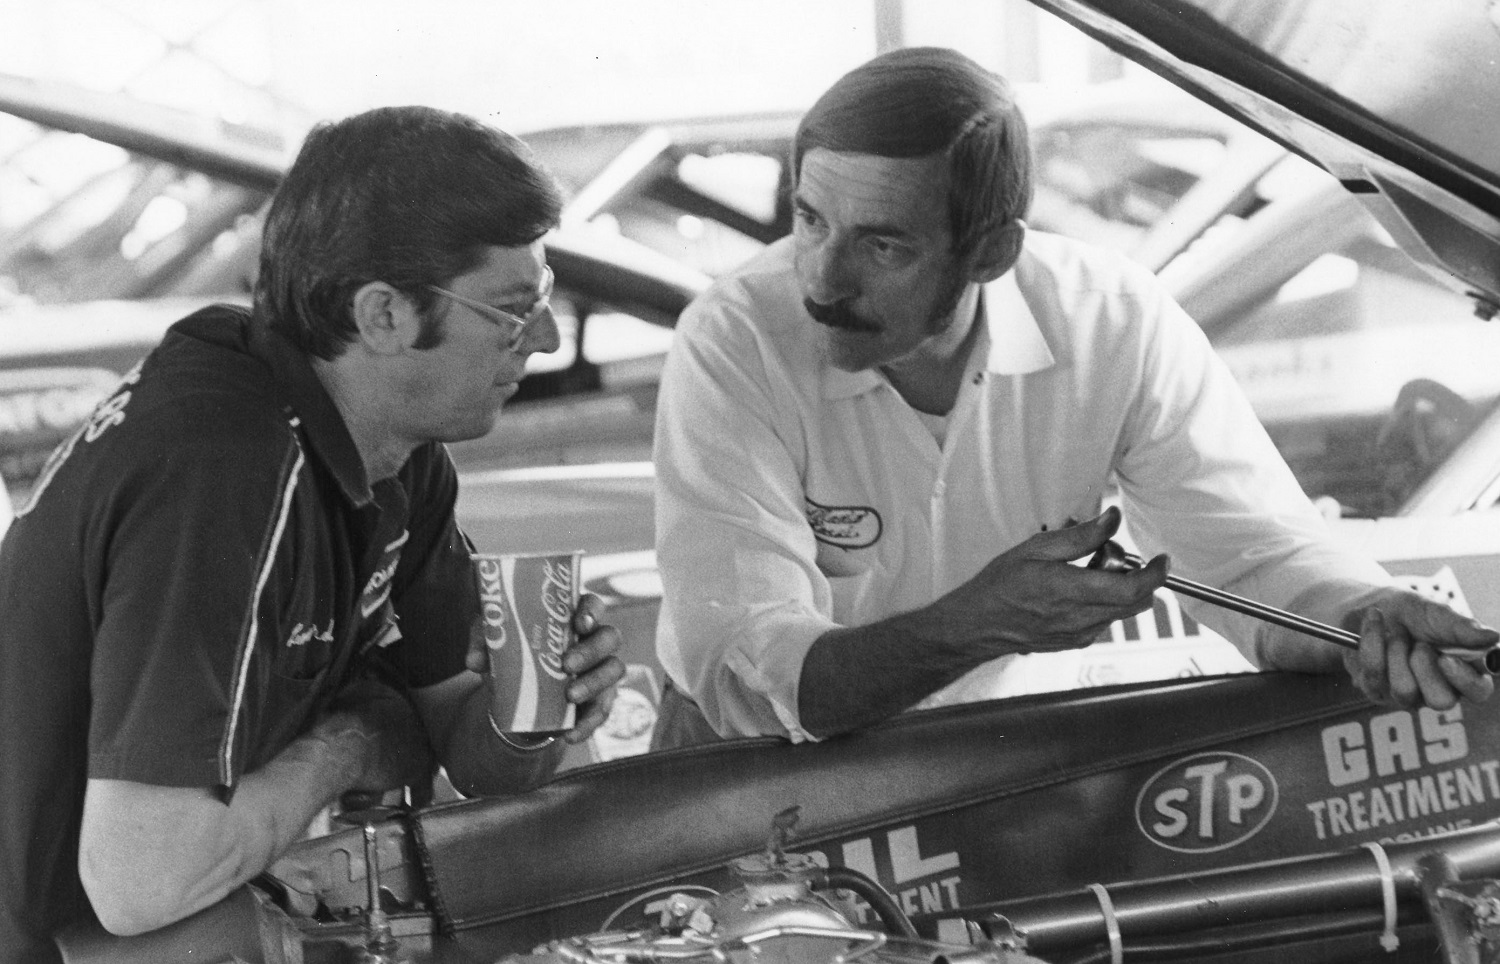 Renowned NASCAR mechanics Leonard Wood and Mario Rossi chat in the garage area at a 1974 NASCAR Cup Series race.   ISC Images & Archives via Getty Images